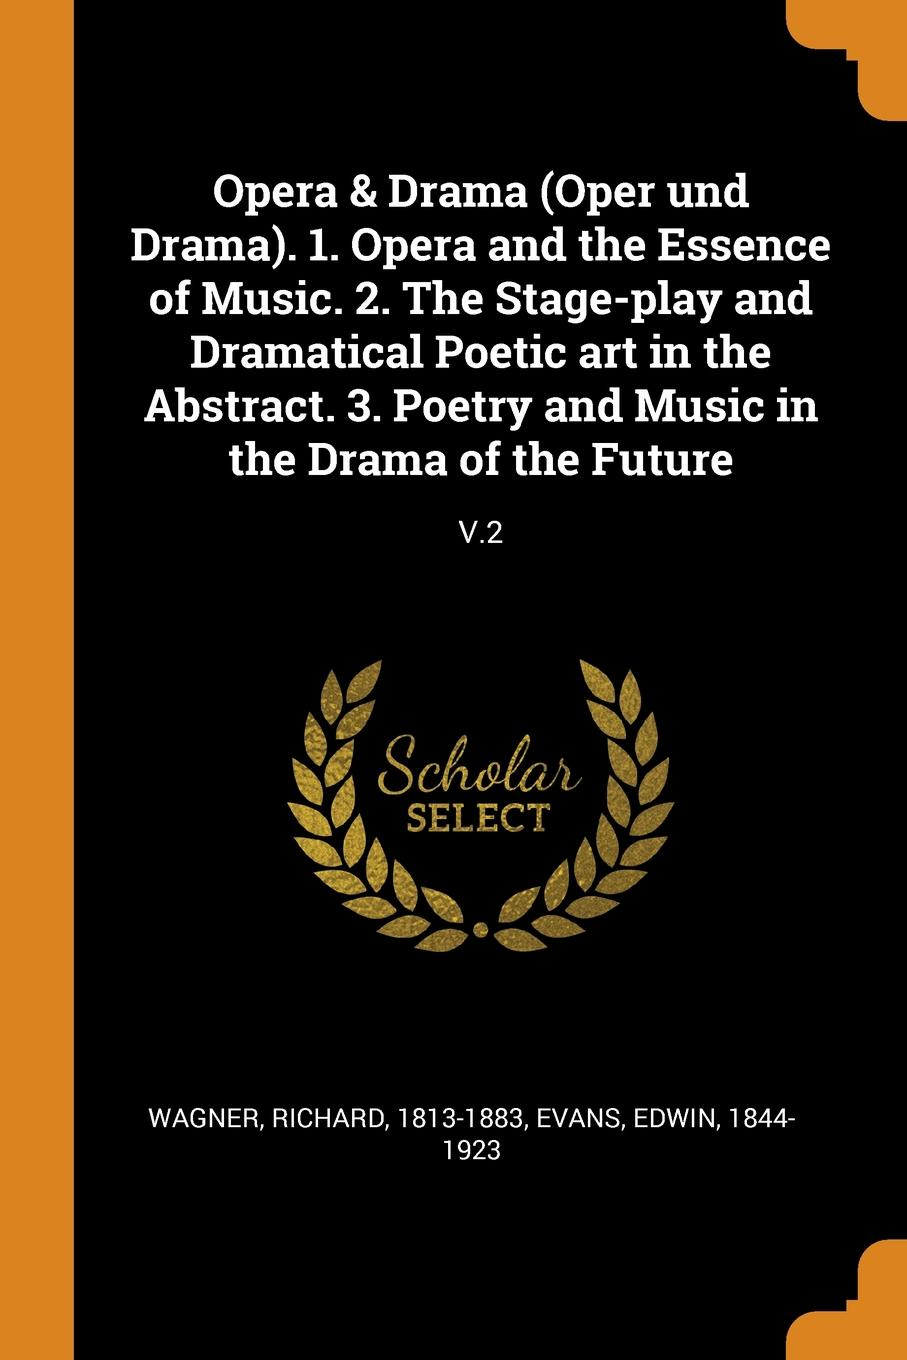 Richard Wagner, Edwin Evans Opera . Drama (Oper und Drama). 1. Opera and the Essence of Music. 2. The Stage-play and Dramatical Poetic art in the Abstract. 3. Poetry and Music in the Drama of the Future. V.2 heinrich wilsing richard wagner the mastersingers of nurnberg a guide to the music and the drama